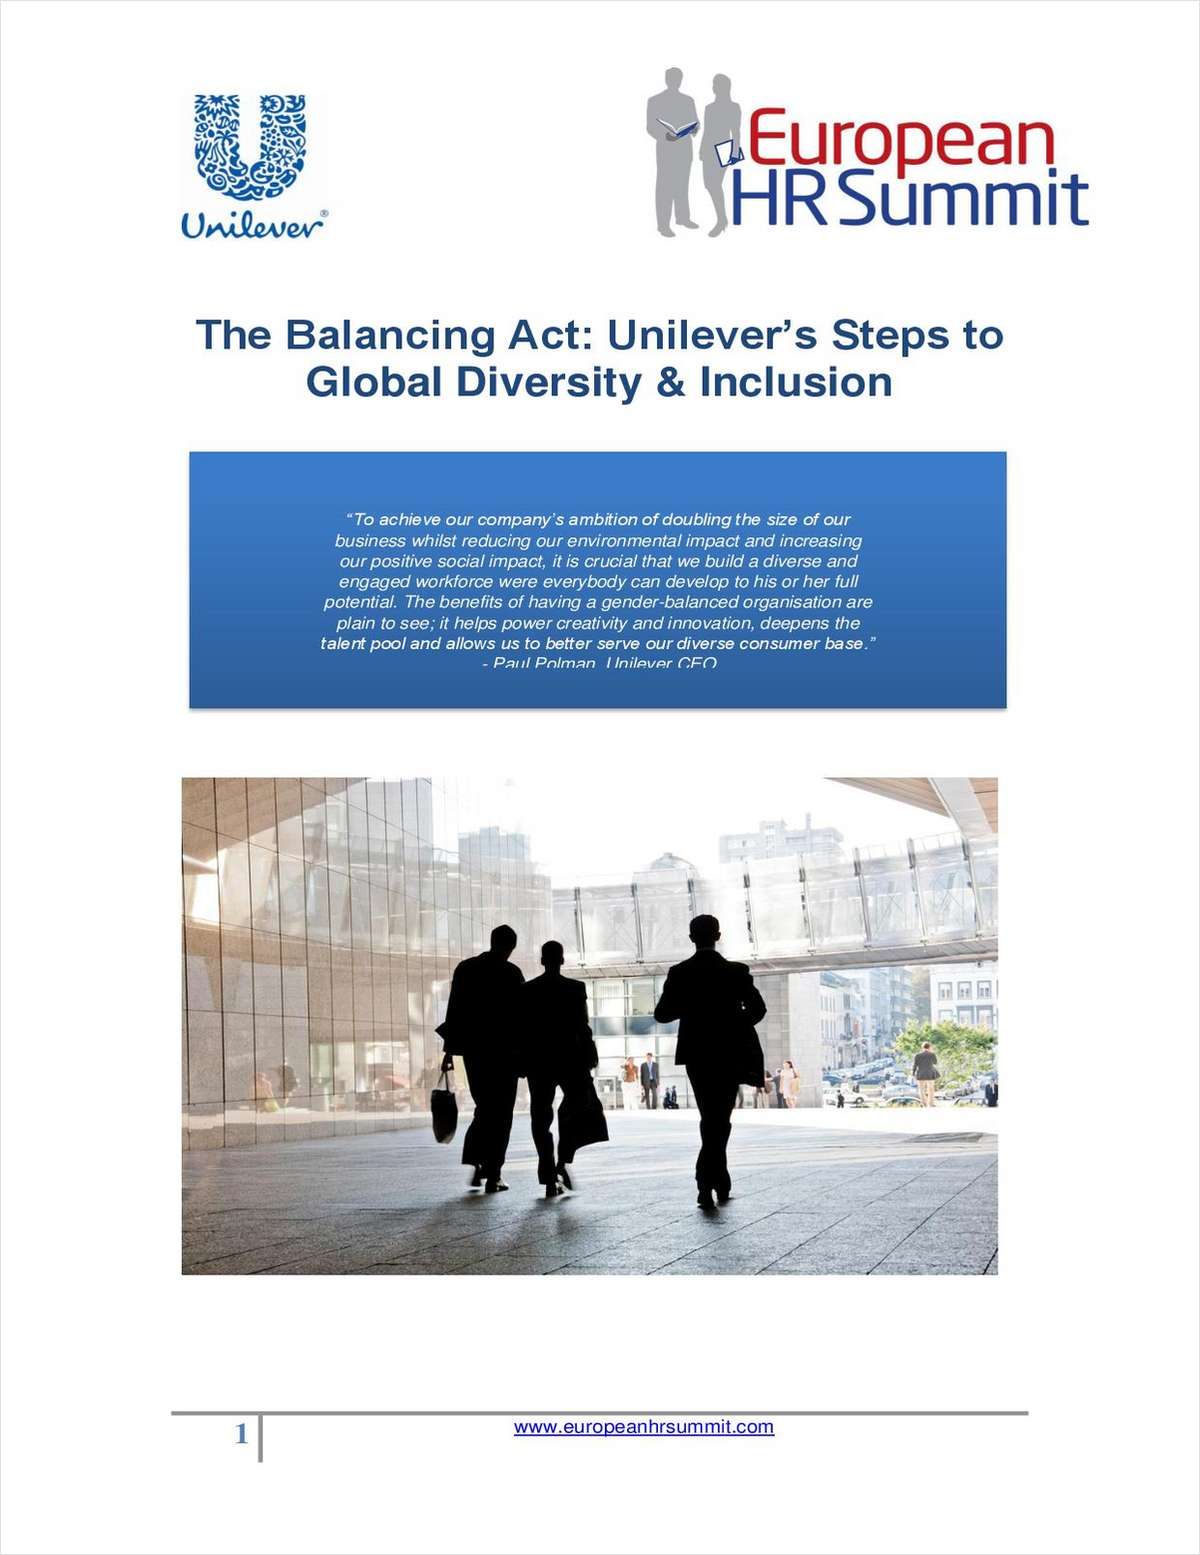 The Balancing Act: Unilever's Steps to Global Diversity & Inclusion